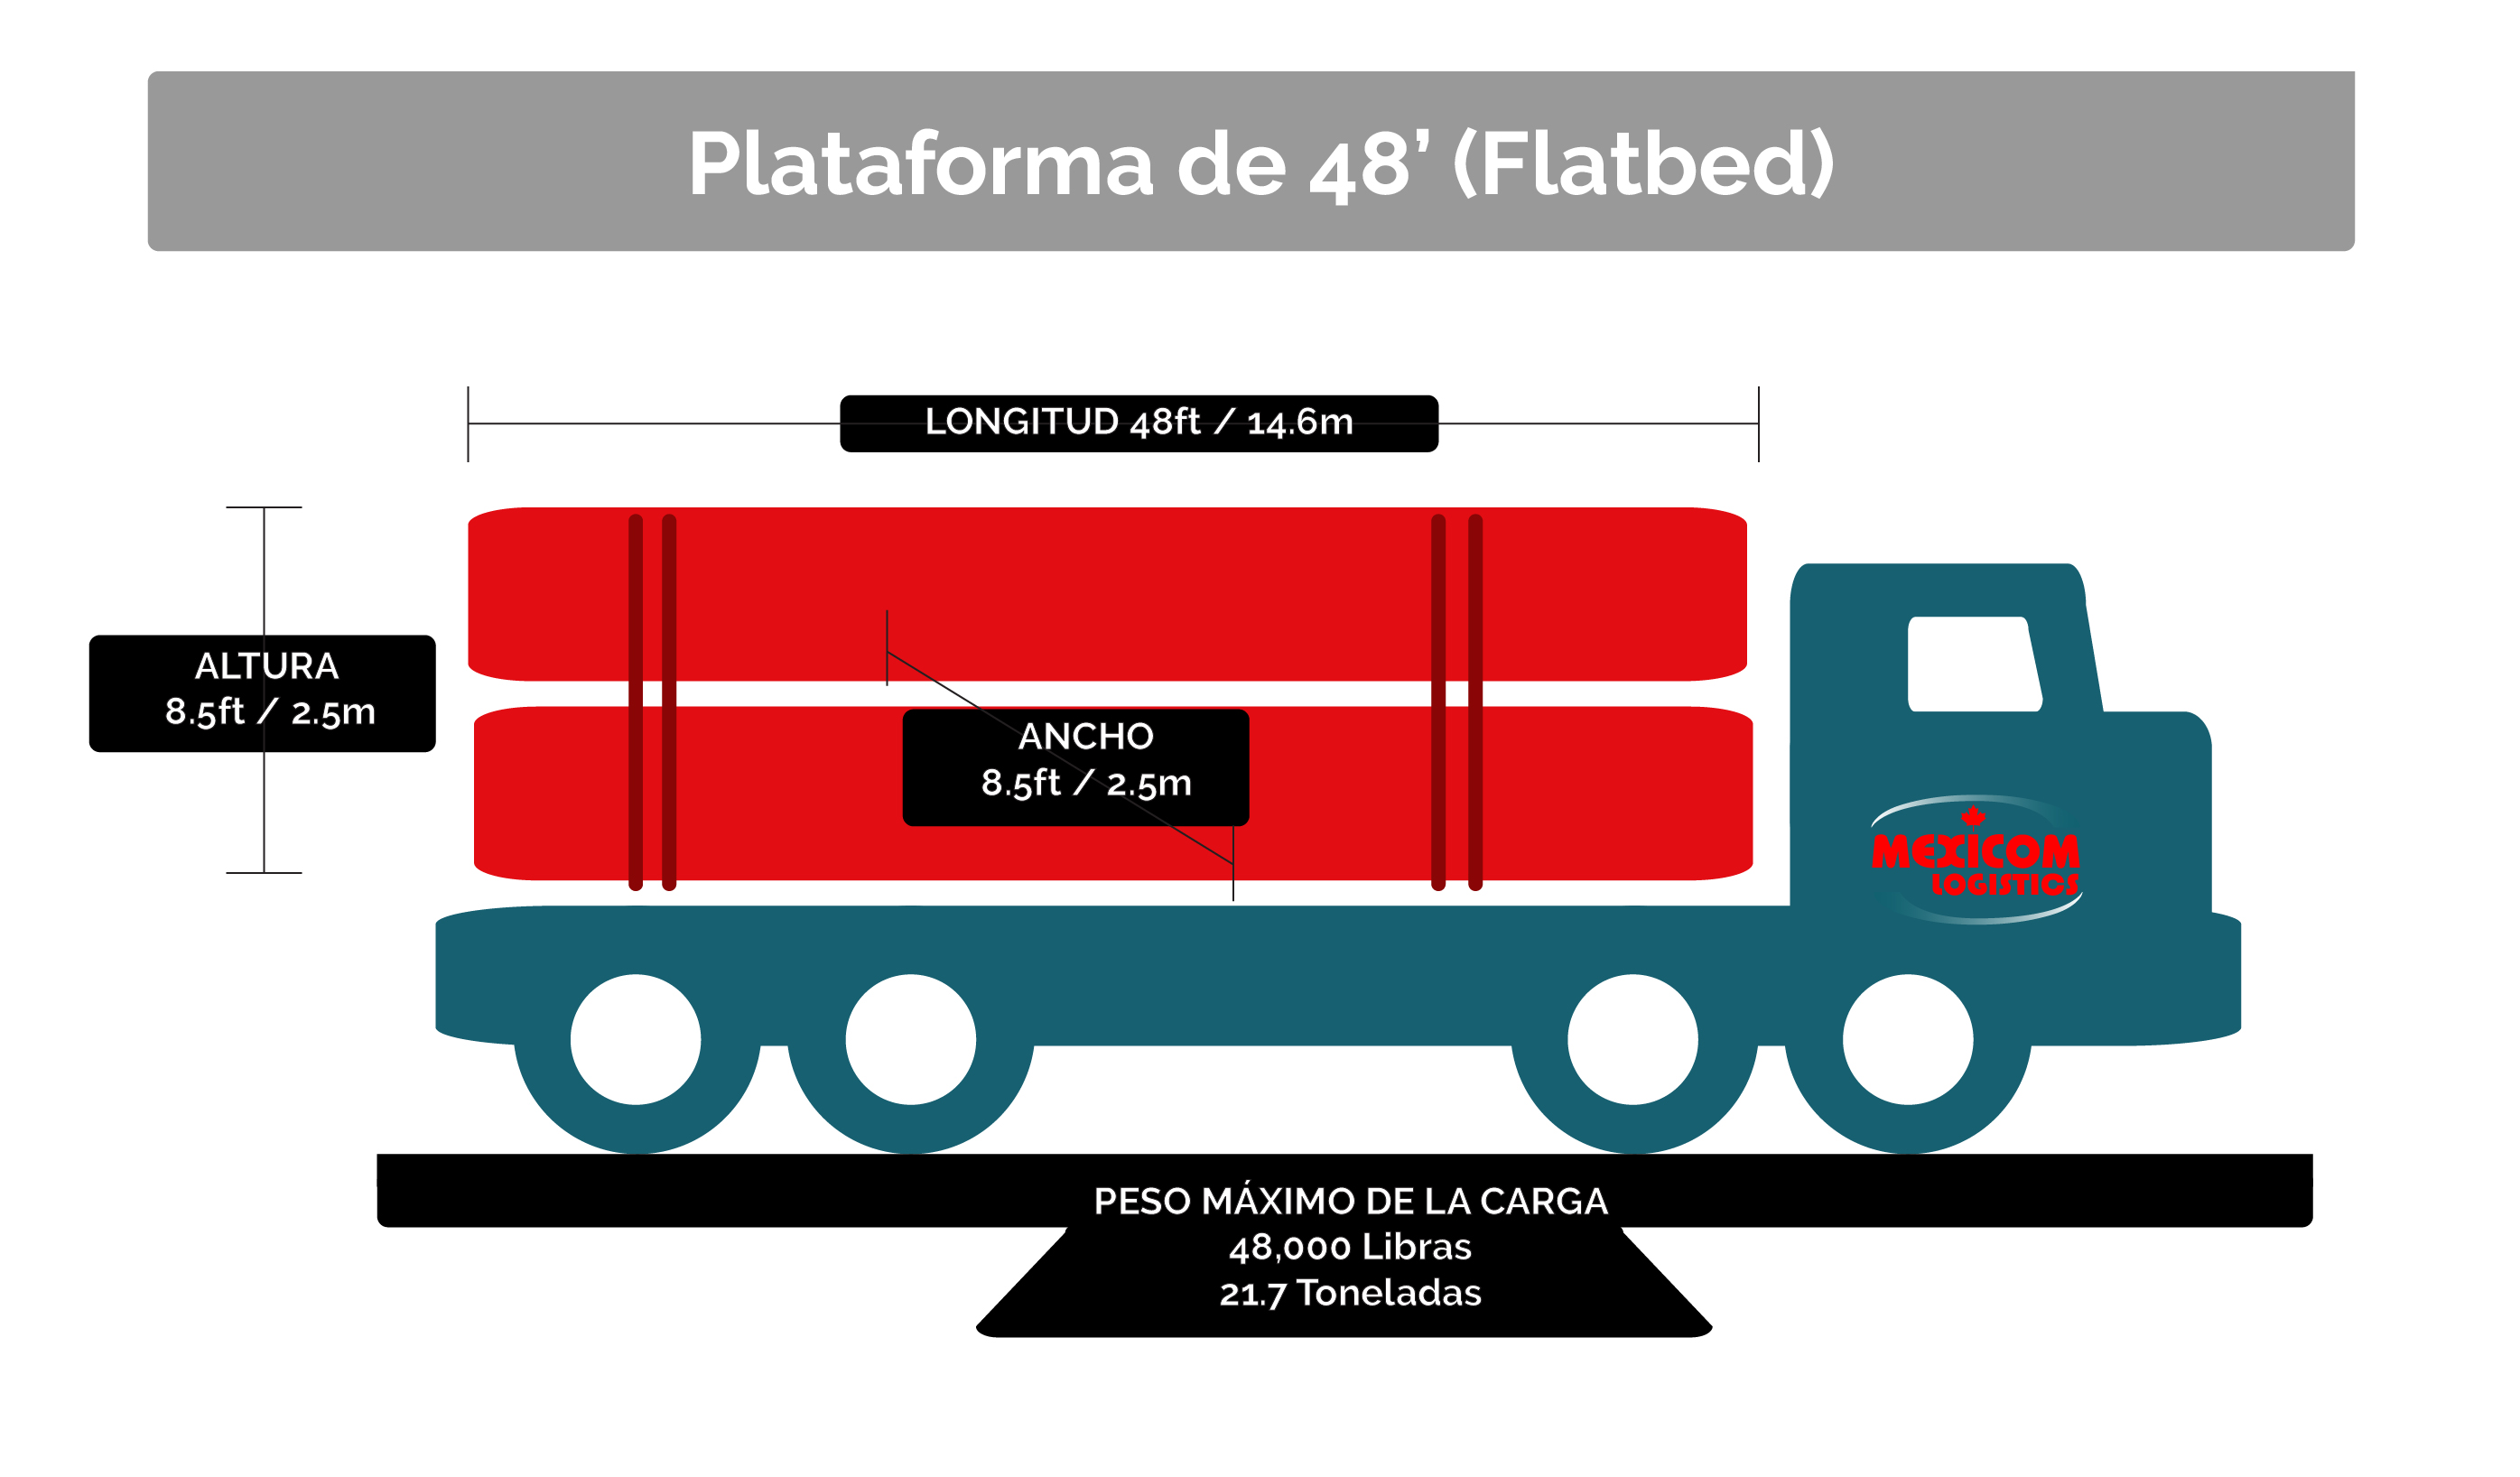 altura_ancho_largo_flatbed_48_pies